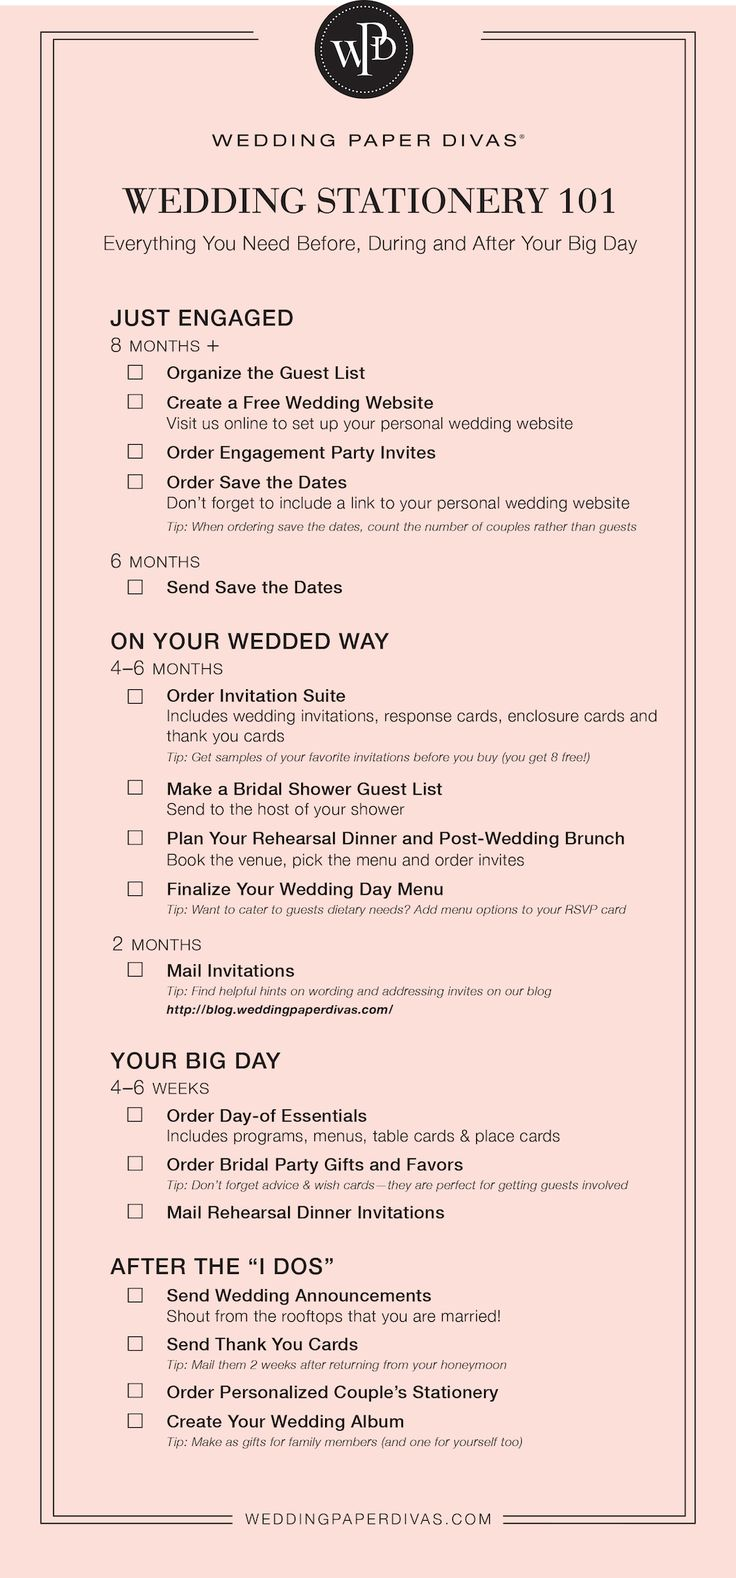 Weding stationery 101 from Wedding paper divas